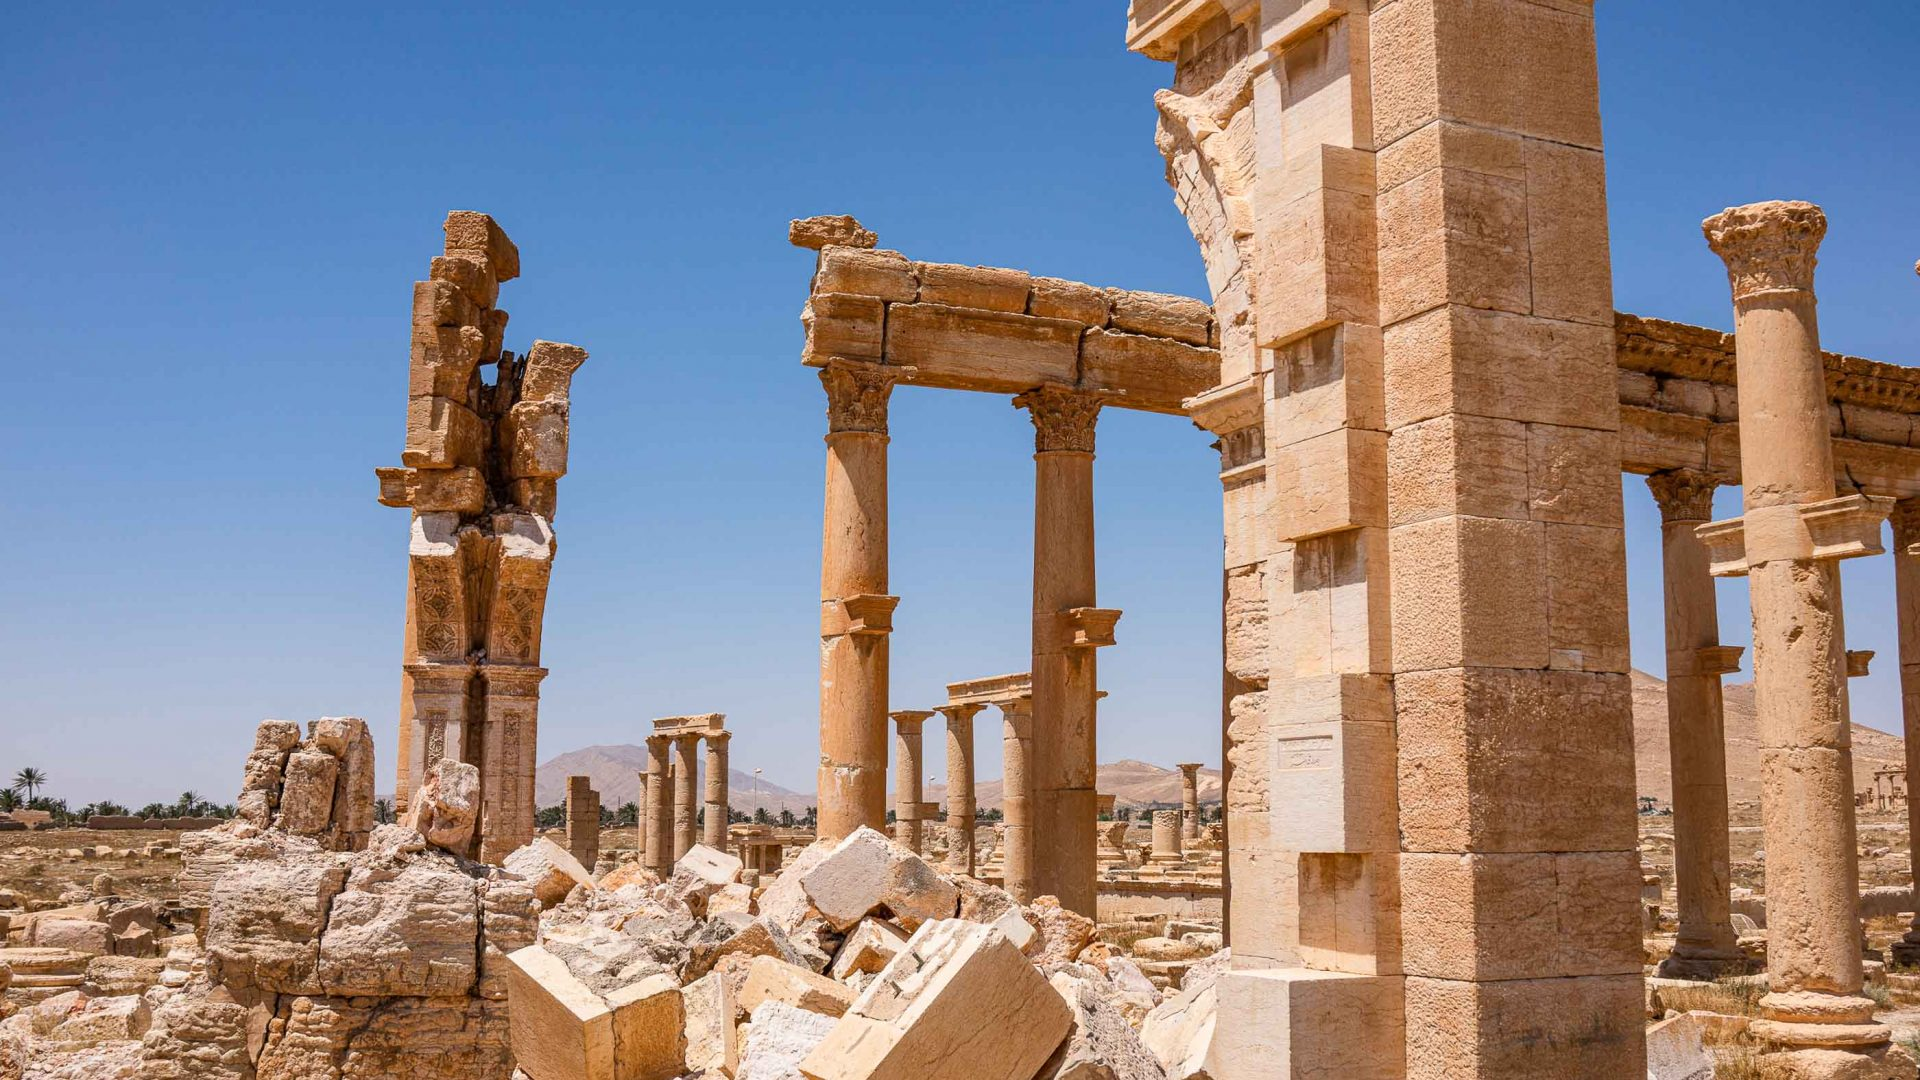 The remains of Palmyra's Monumental Arch, destroyed by IS.